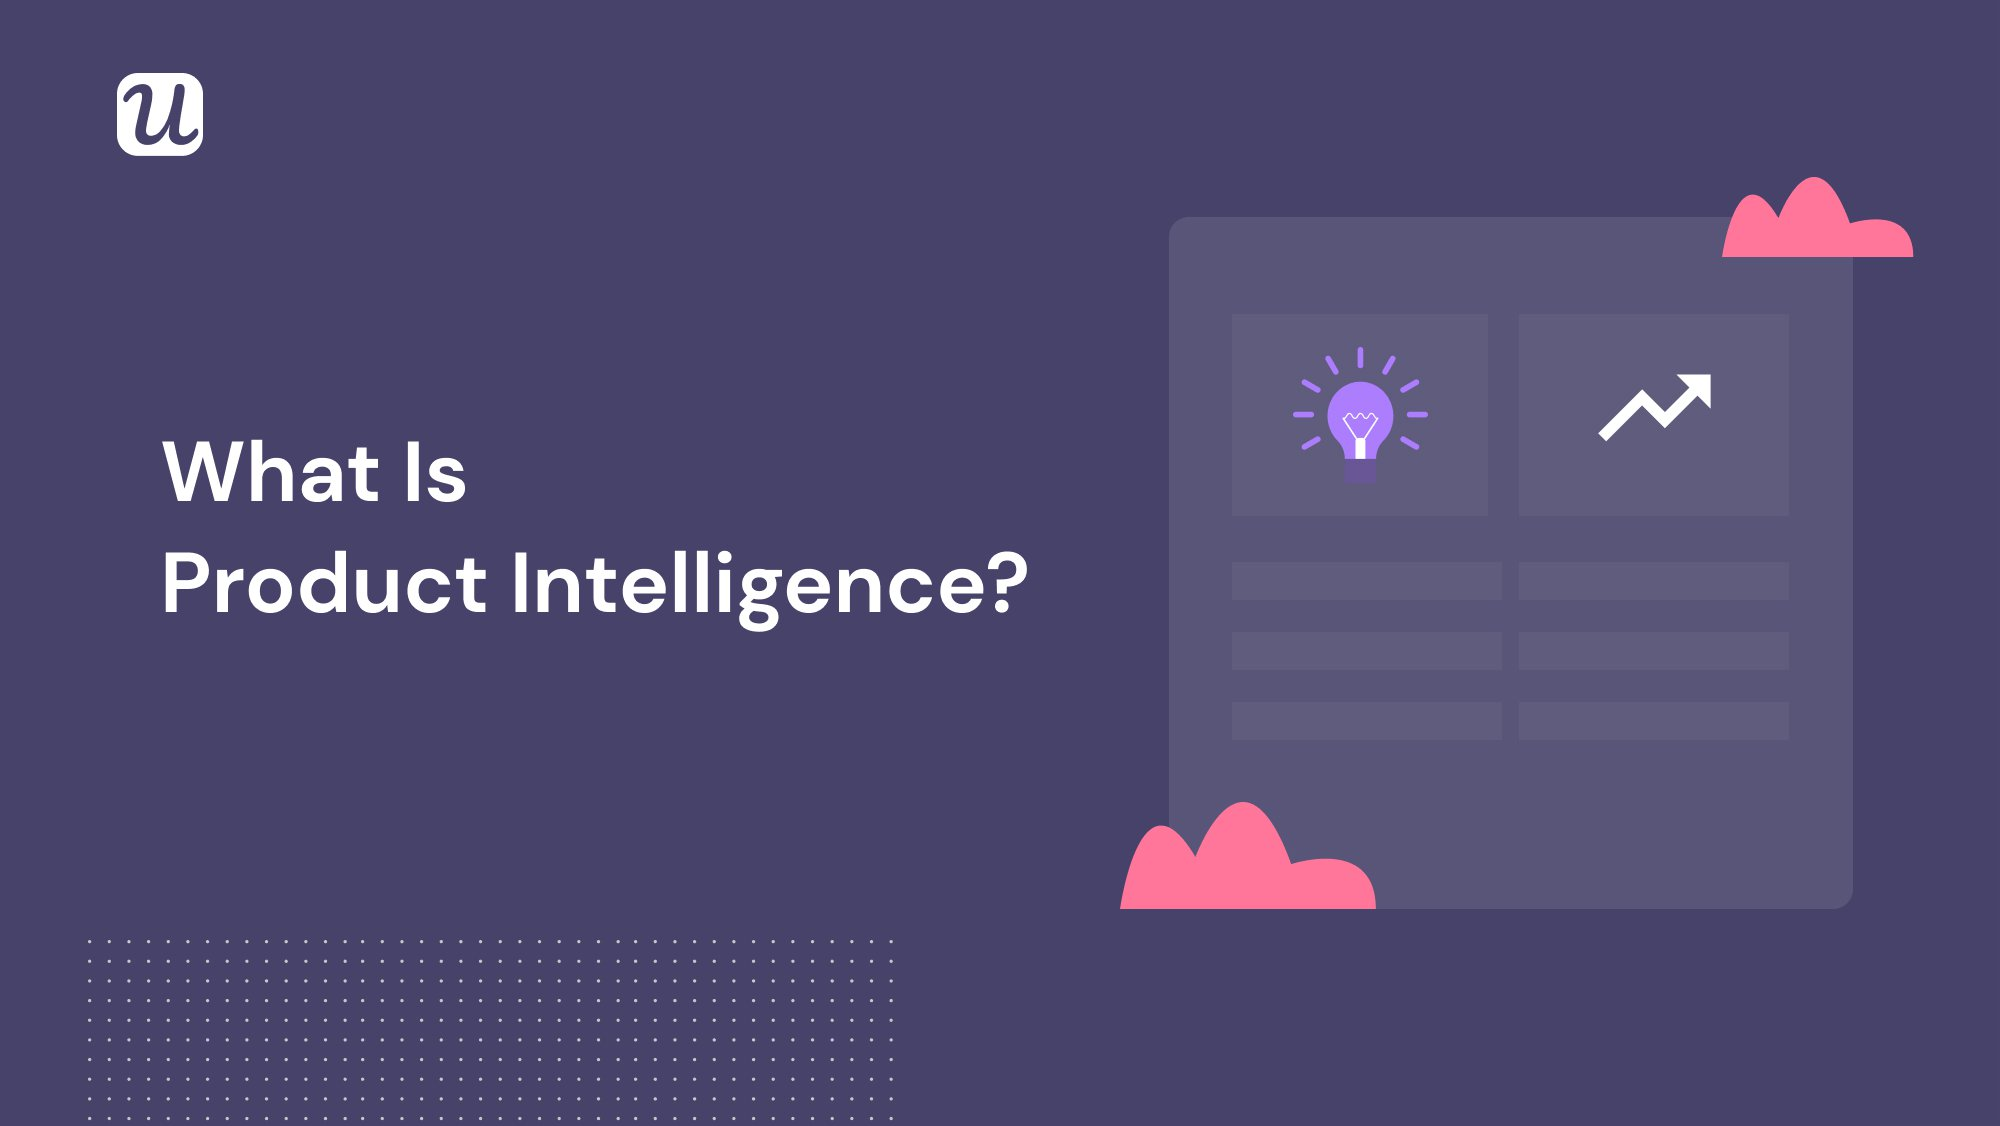 What Is Product Intelligence?